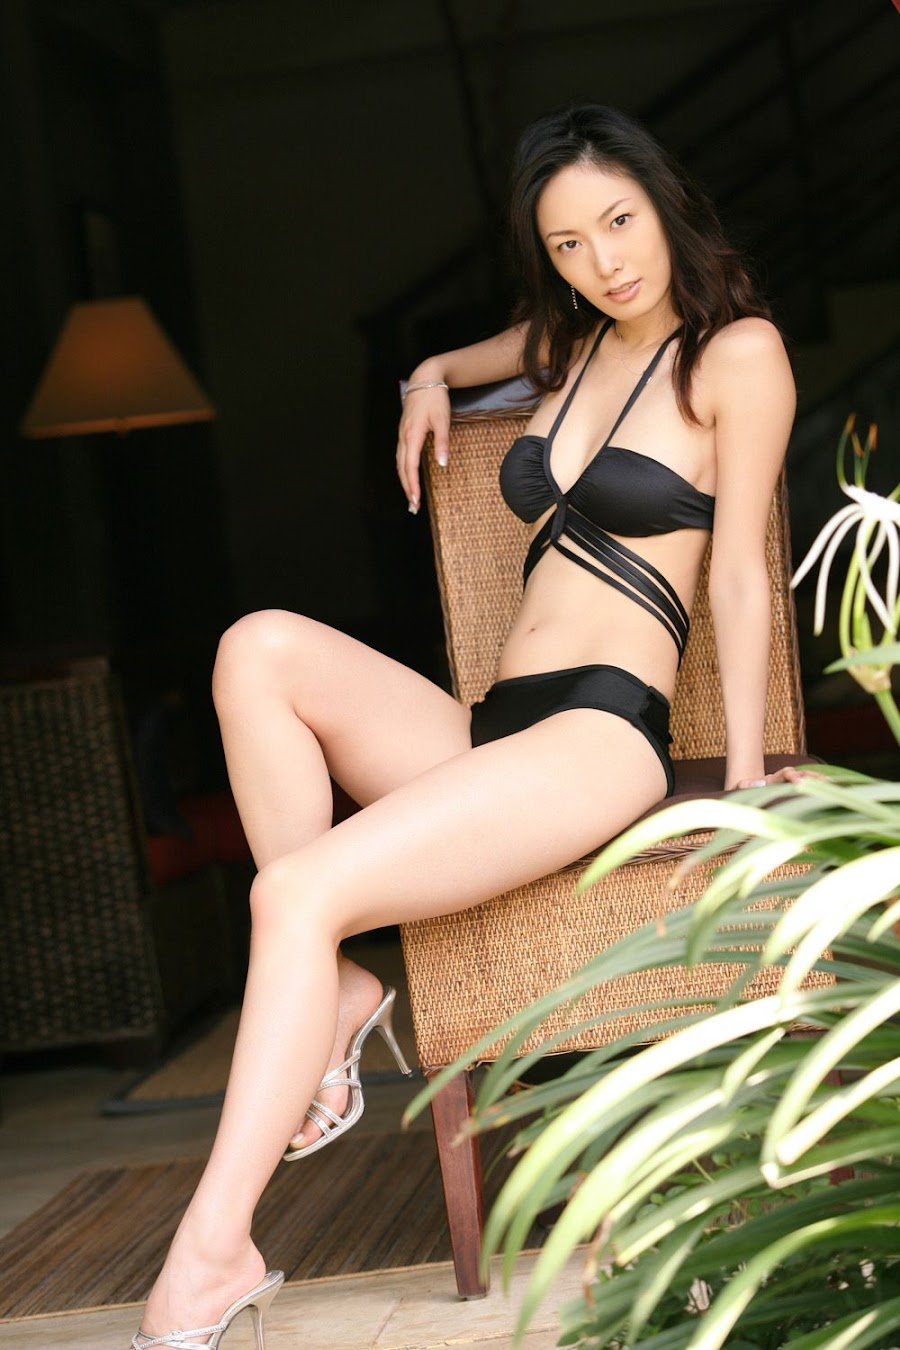 Nao Nagasawa - Japanese actress, singer and model